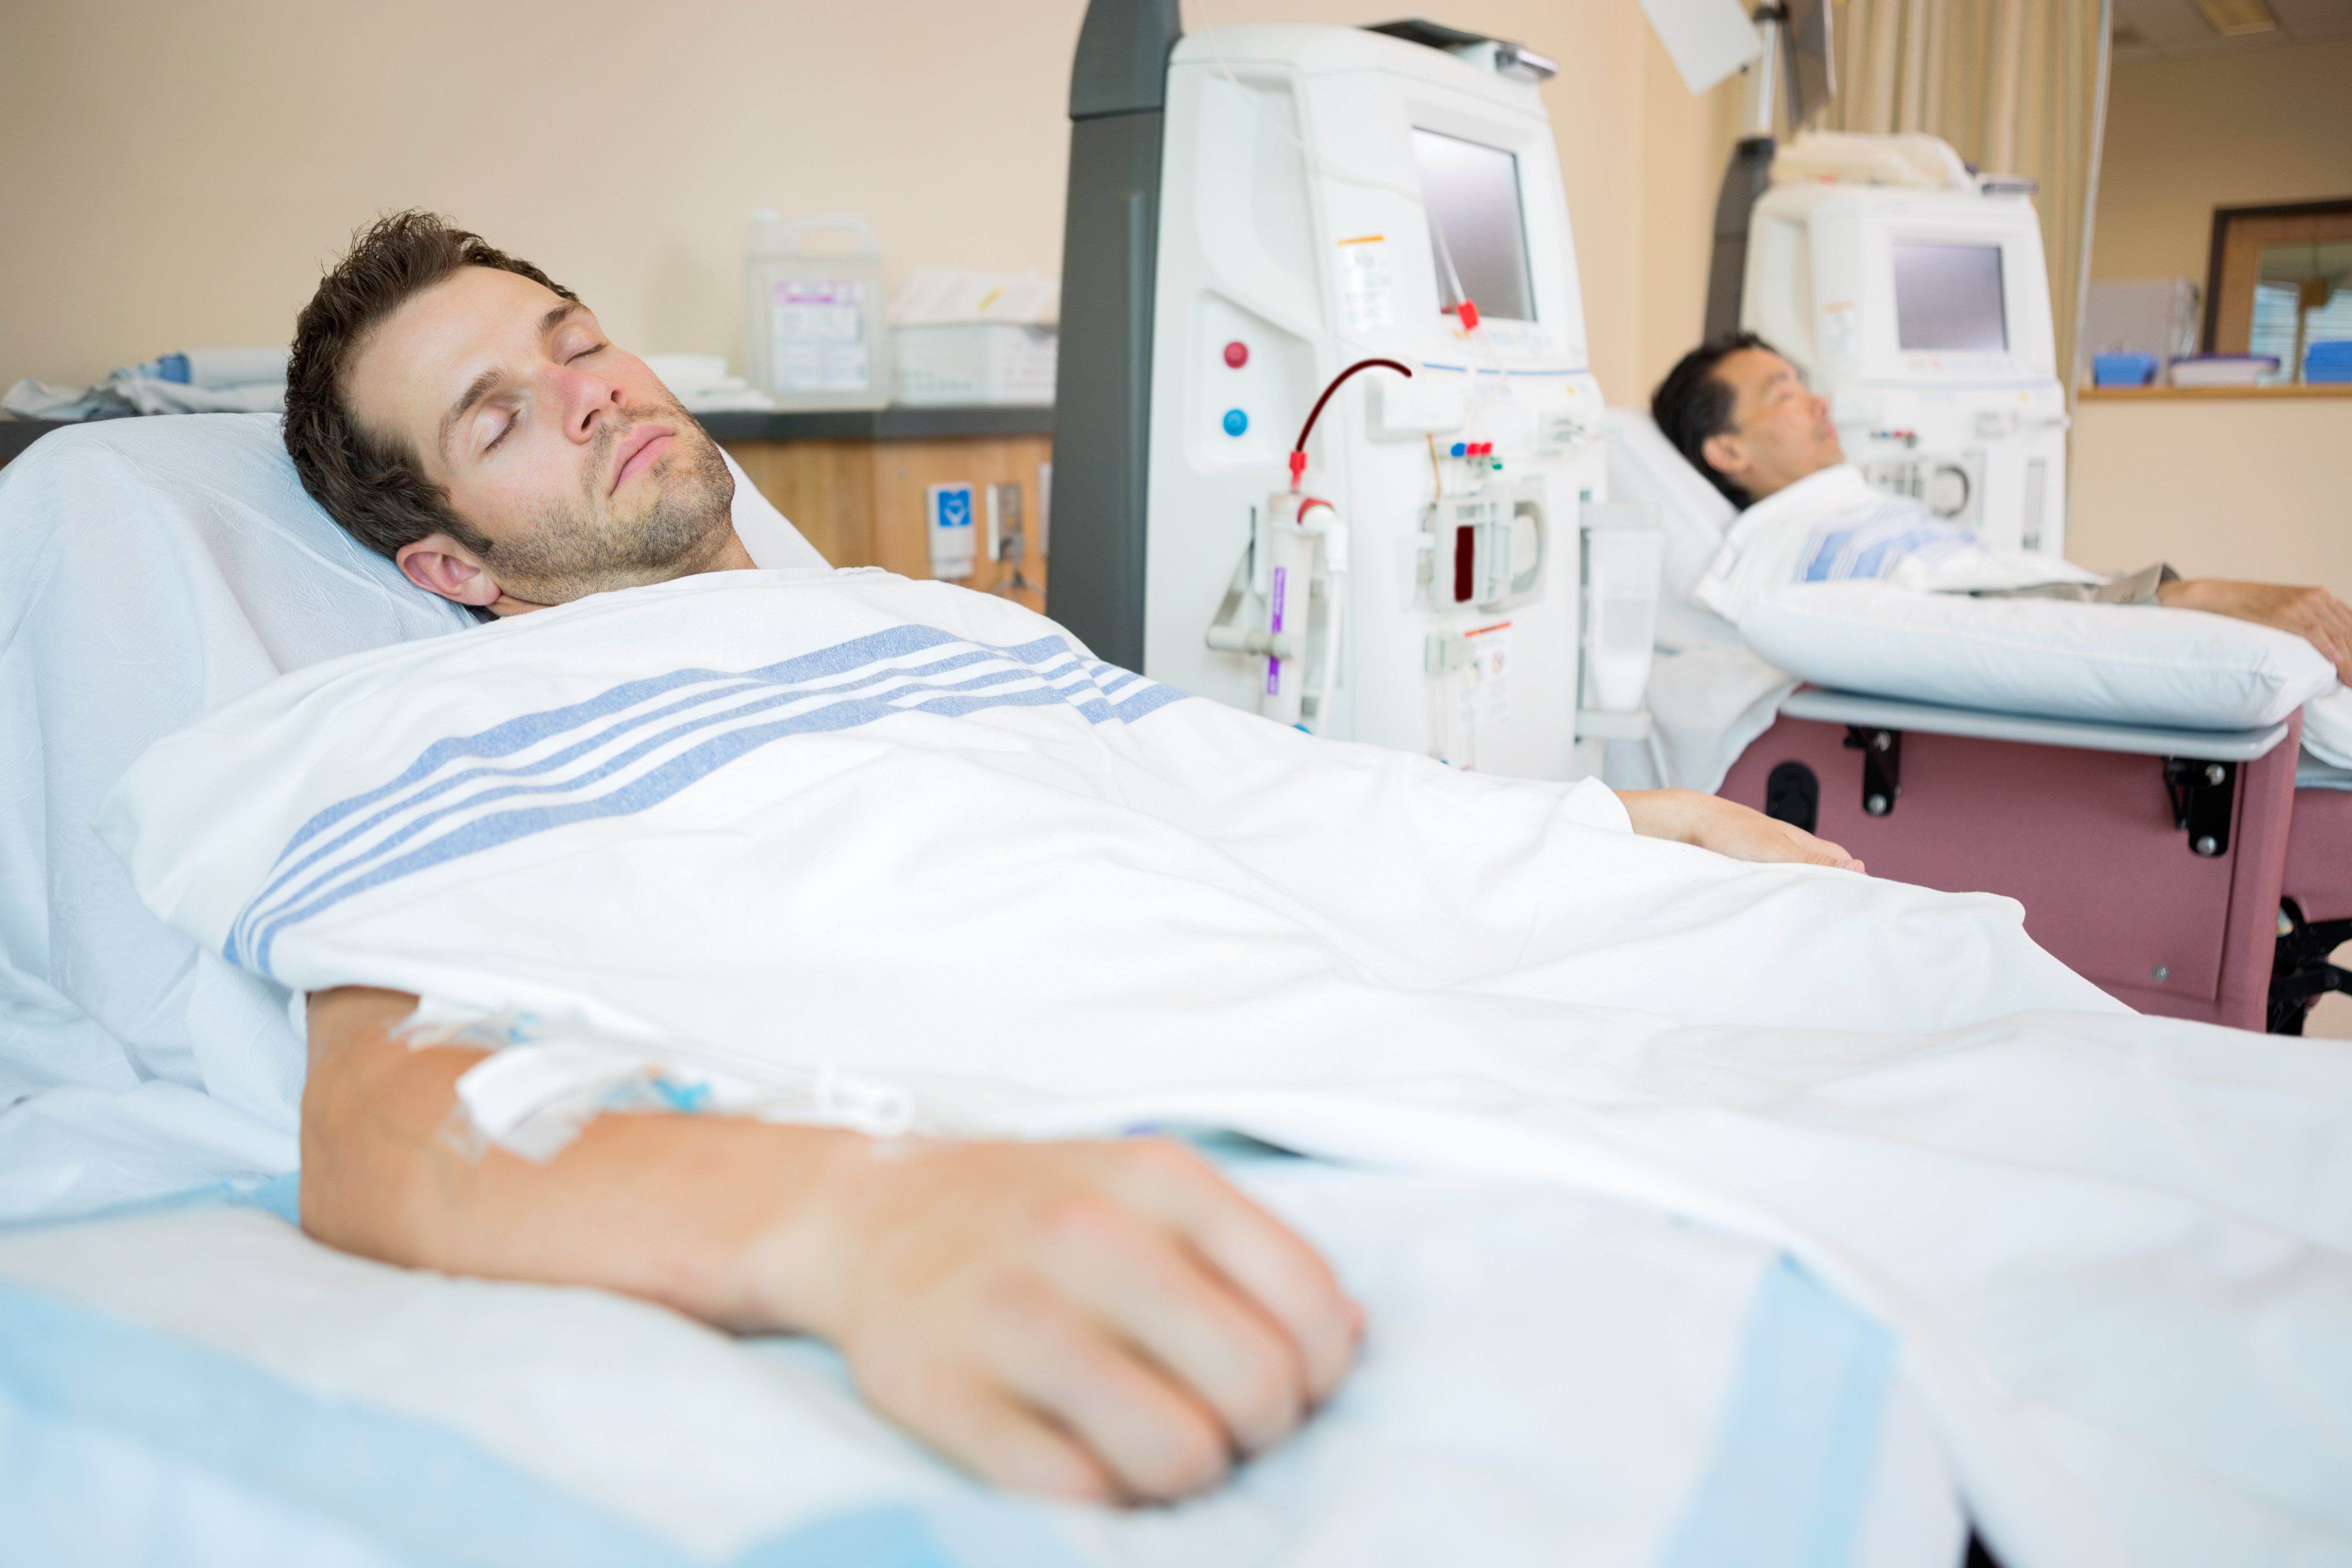 Male patients sleeping while receiving renal dialysis in chemo room at hospital | Photo: Shutterstock.com